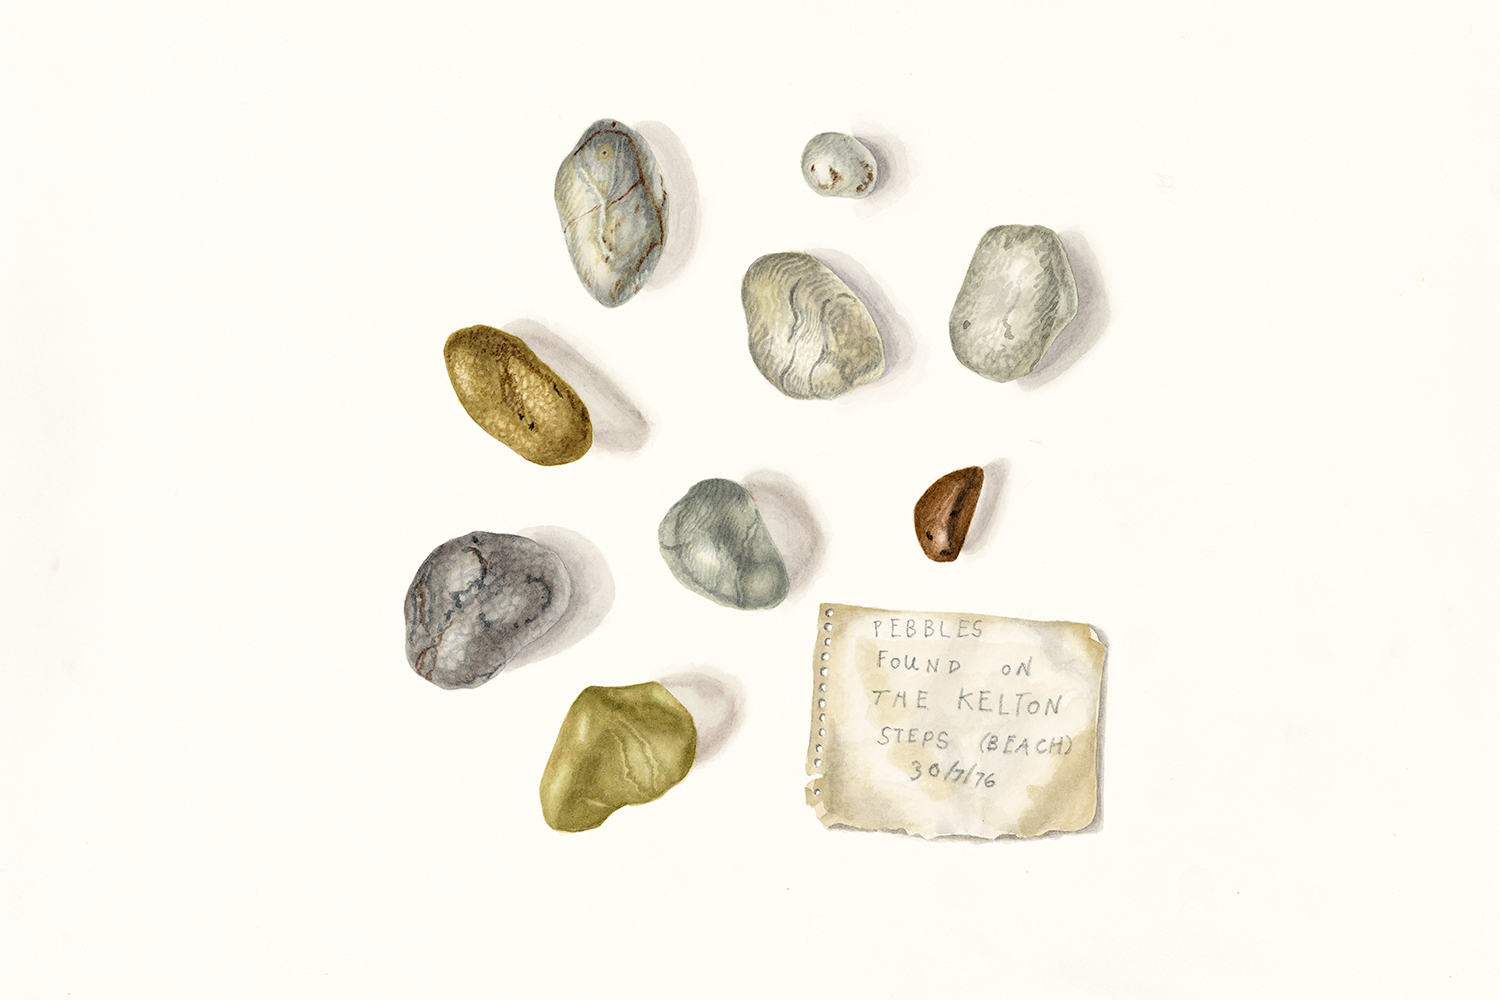 Polishing Stones found in the Big Water of Fleet 29.7.76 (collection of Duncan Matthews), 2010, watercolour on paper